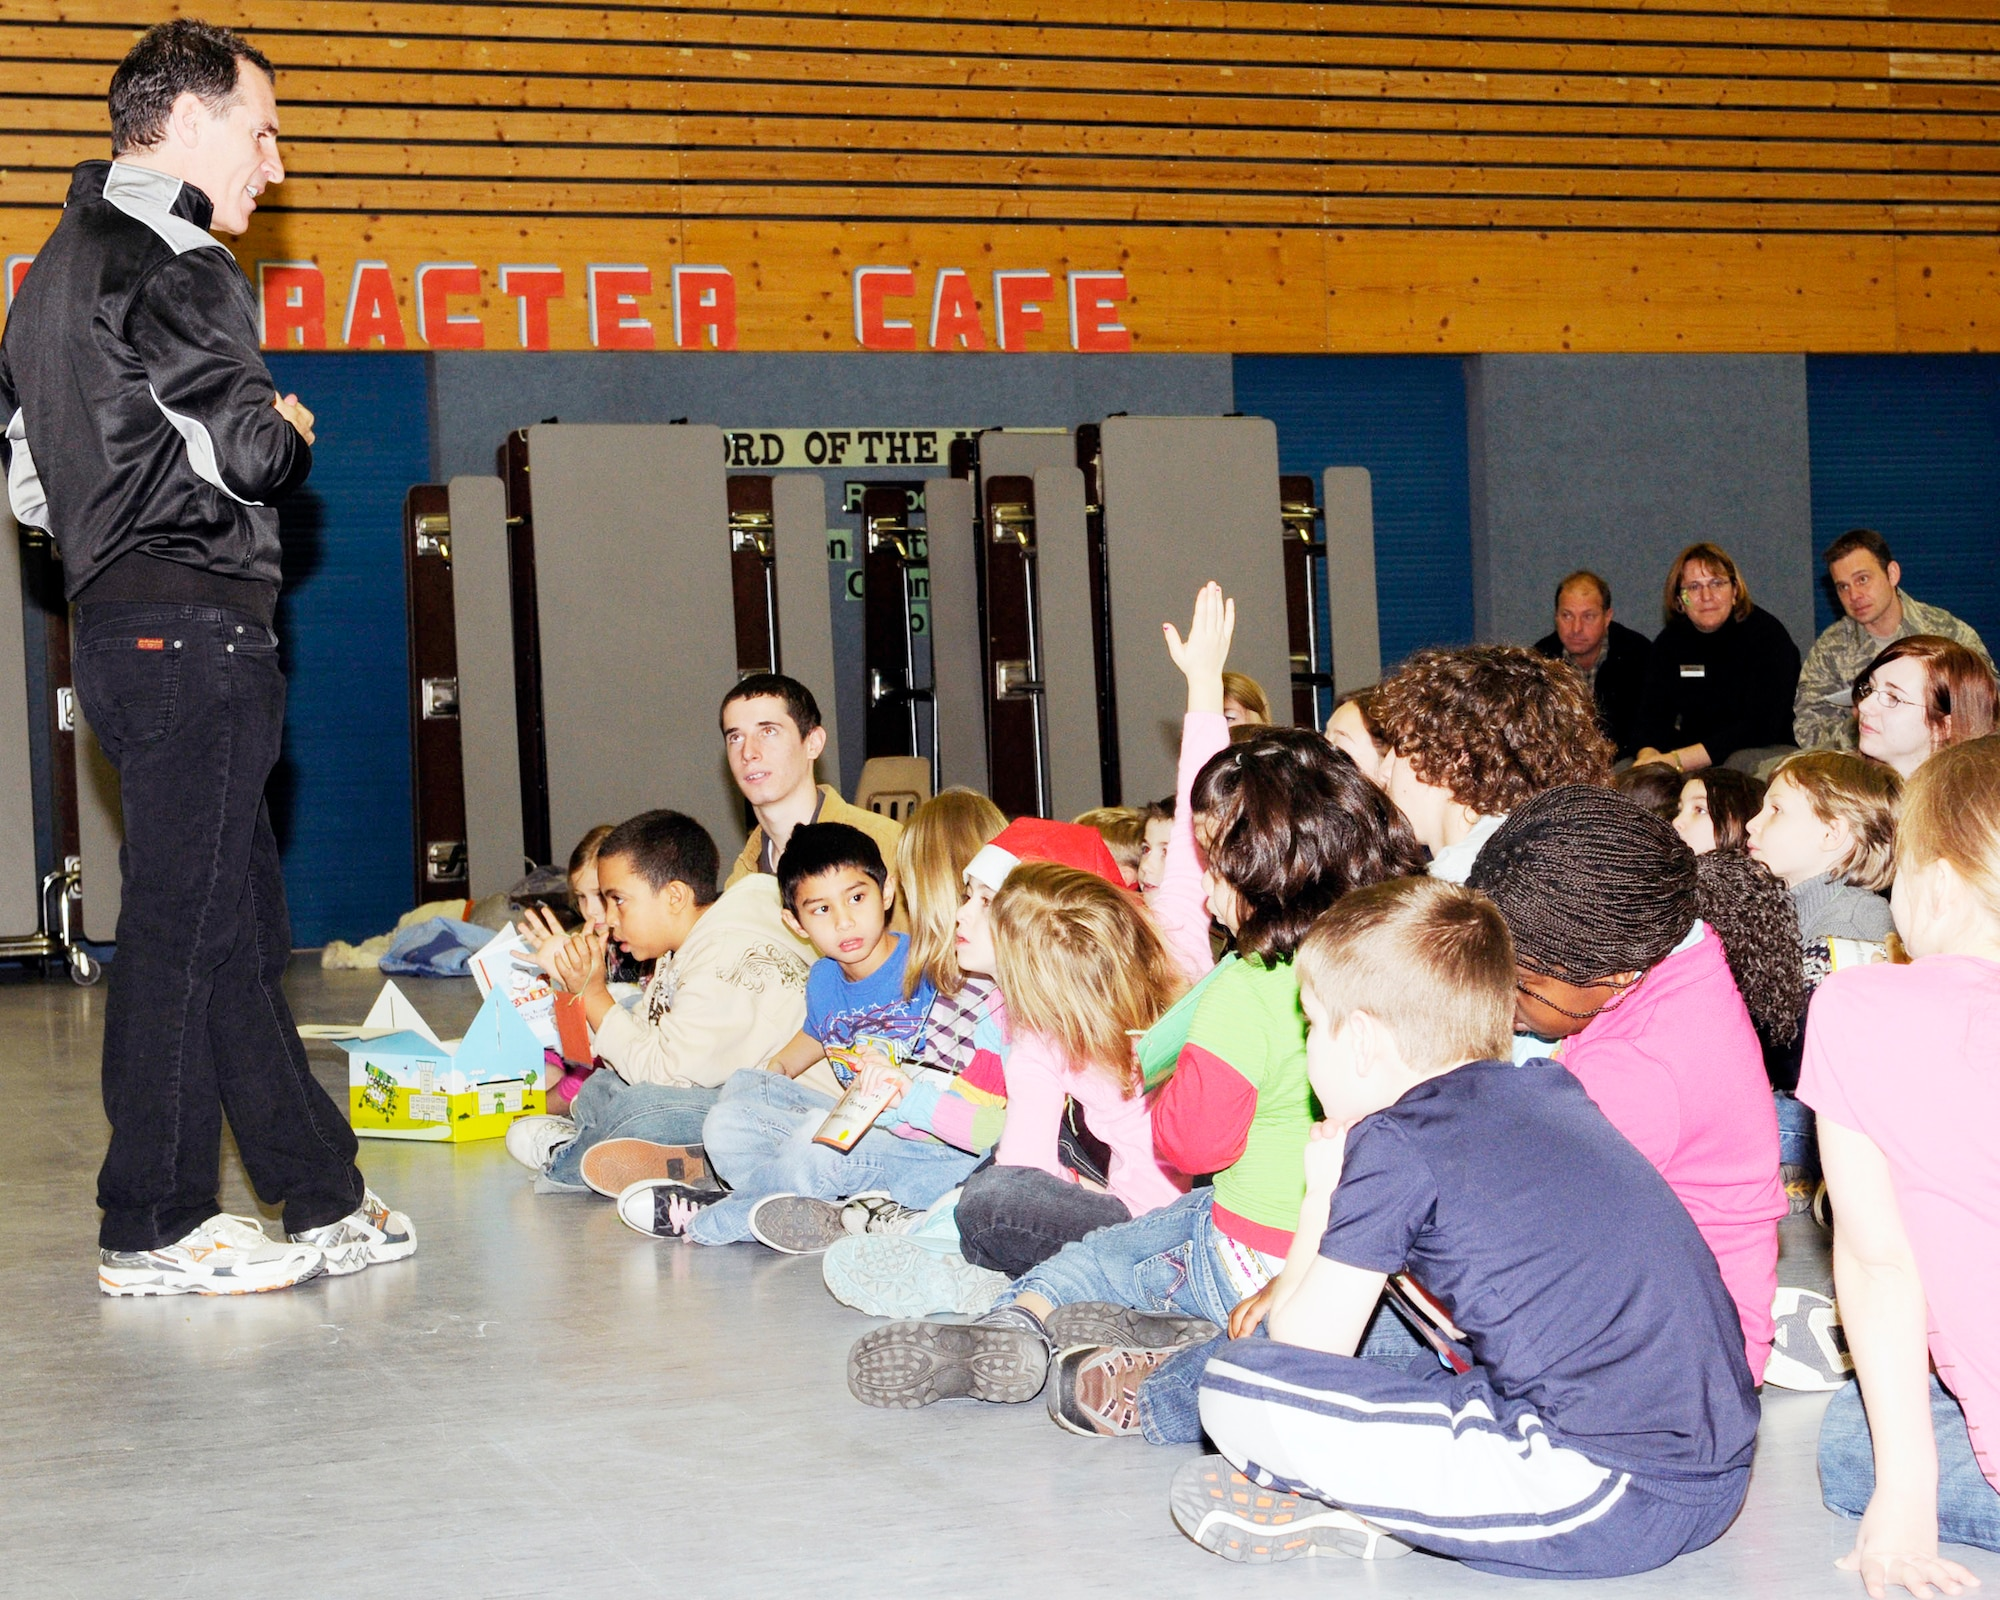 """Trevor Romain answers questions from youth at Ramstein Elementary School Dec. 17, 2009, at Ramstein Air Base, Germany. Mr. Romain, a children's author, is the creator of the Air Force Family focused campaign, """"Cuzzie the Bear"""" designed to comfort school-age children while their parents are deployed. (U.S. Air Force photo/Airman 1st Class Brea Miller)"""